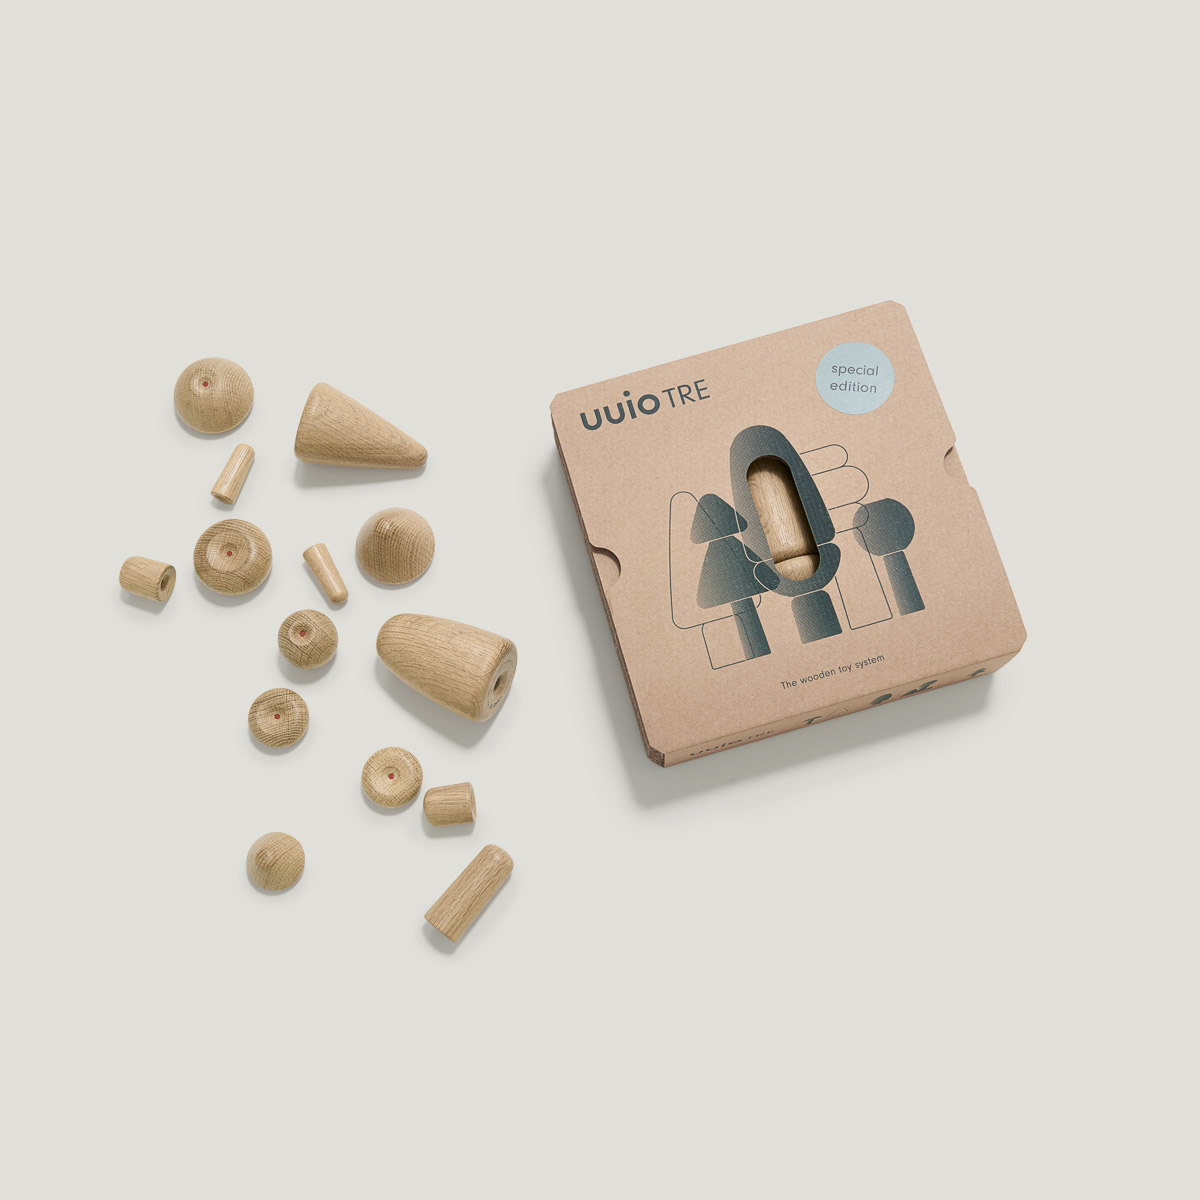 TRE special edition wooden toy packaging